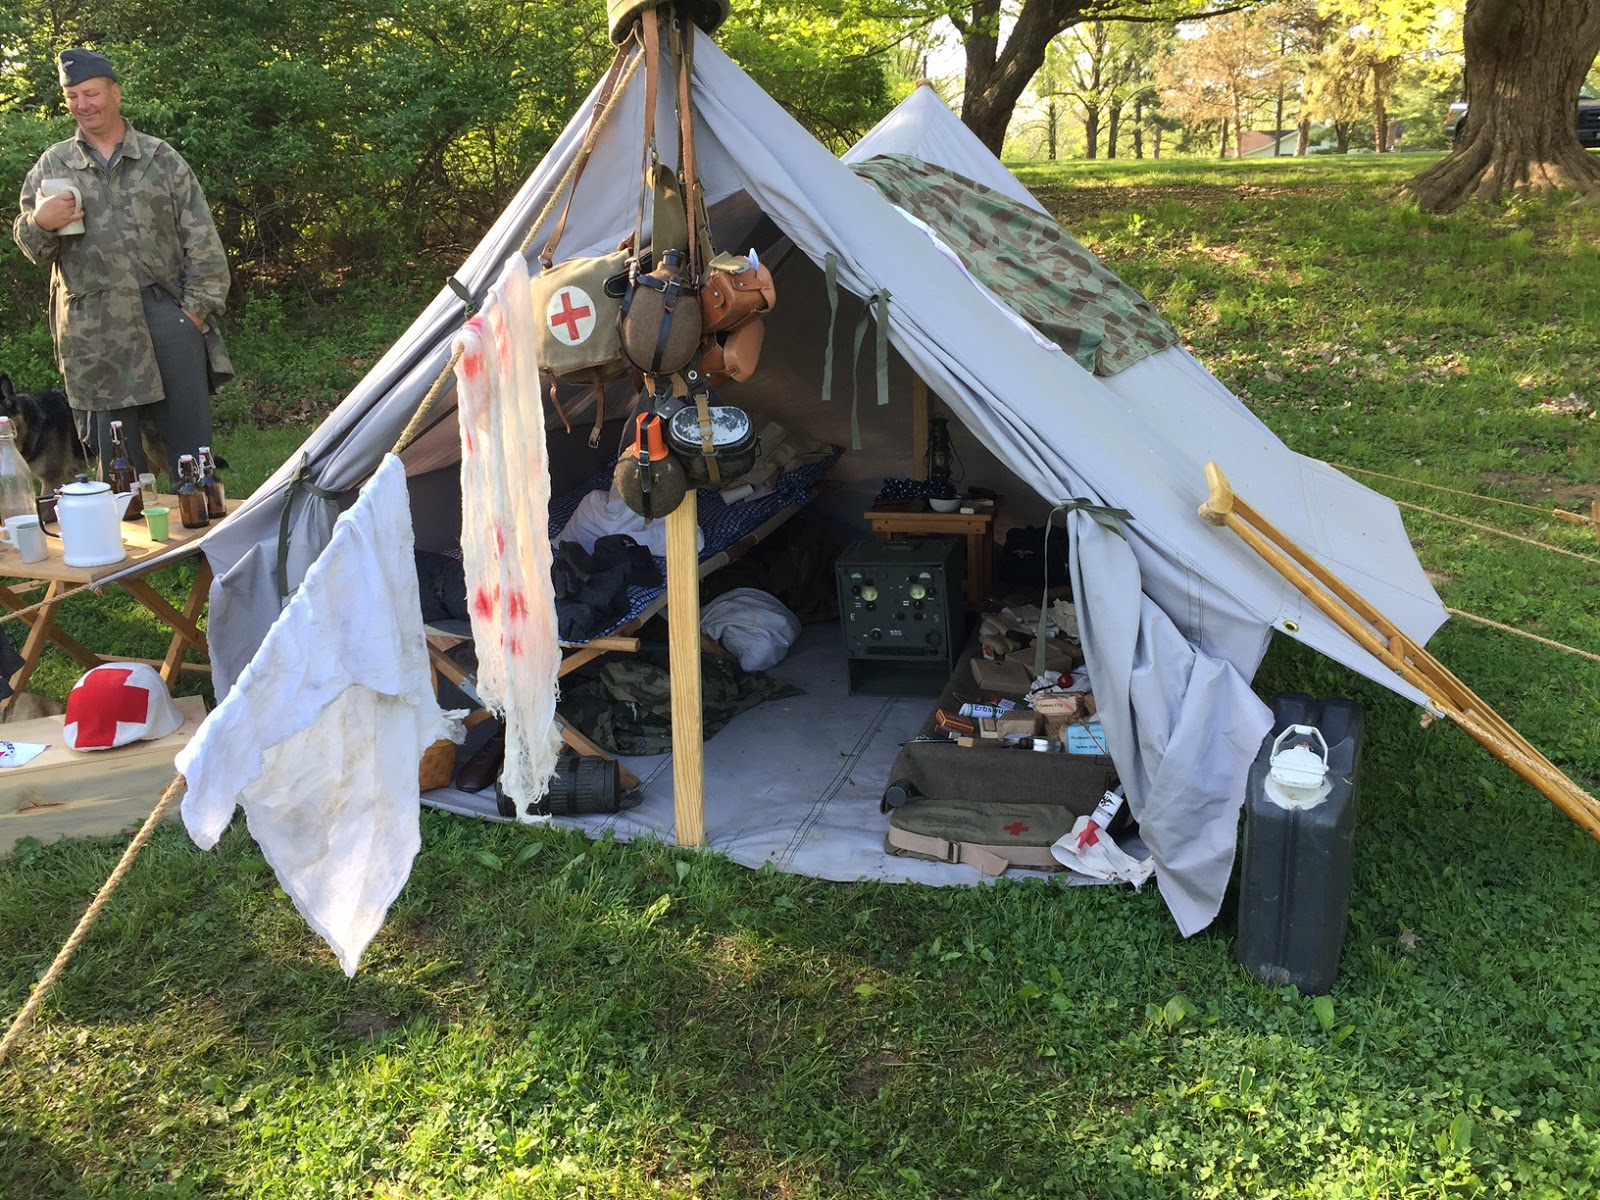 TRUPPENZELT - German WWII Troop Tent & German WWII Tents from Armbruster | Armbruster Tent Maker